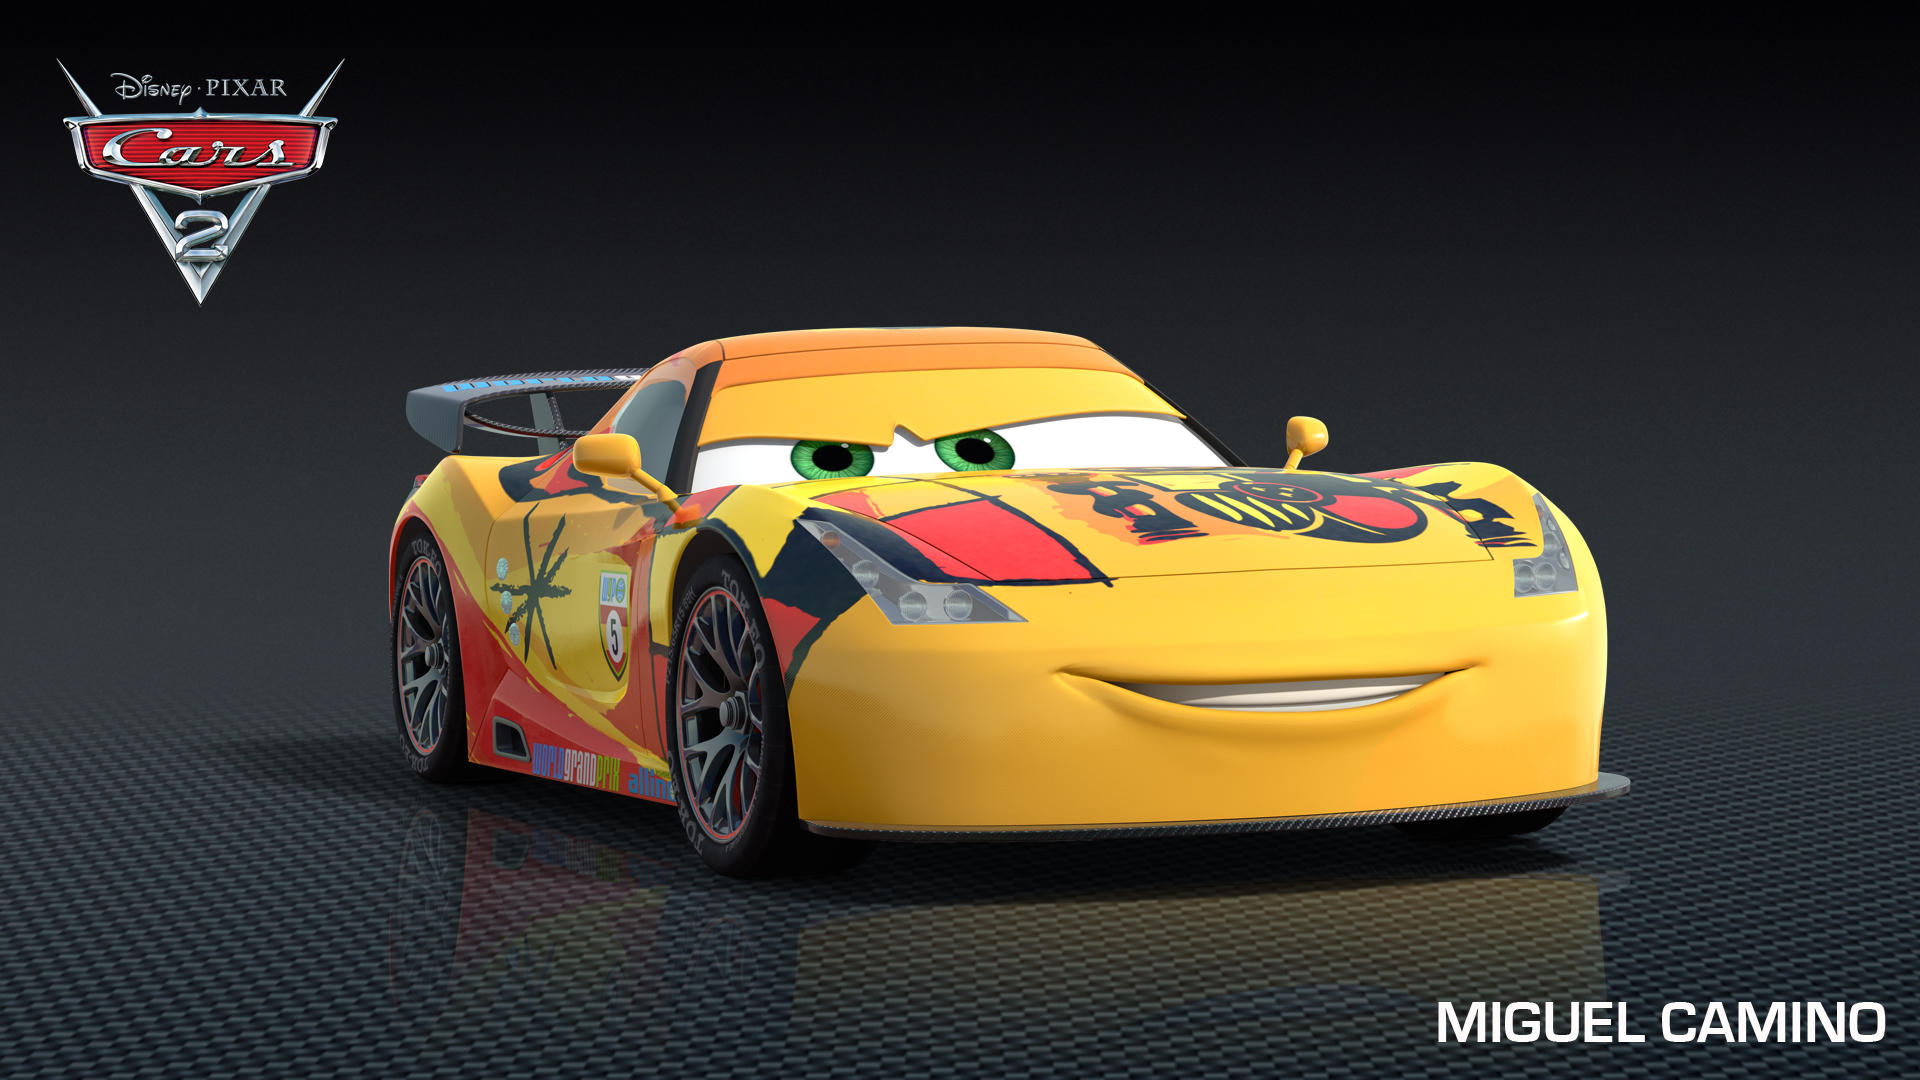 Max Schnell, Miguel Camino Drive Into Cars 2